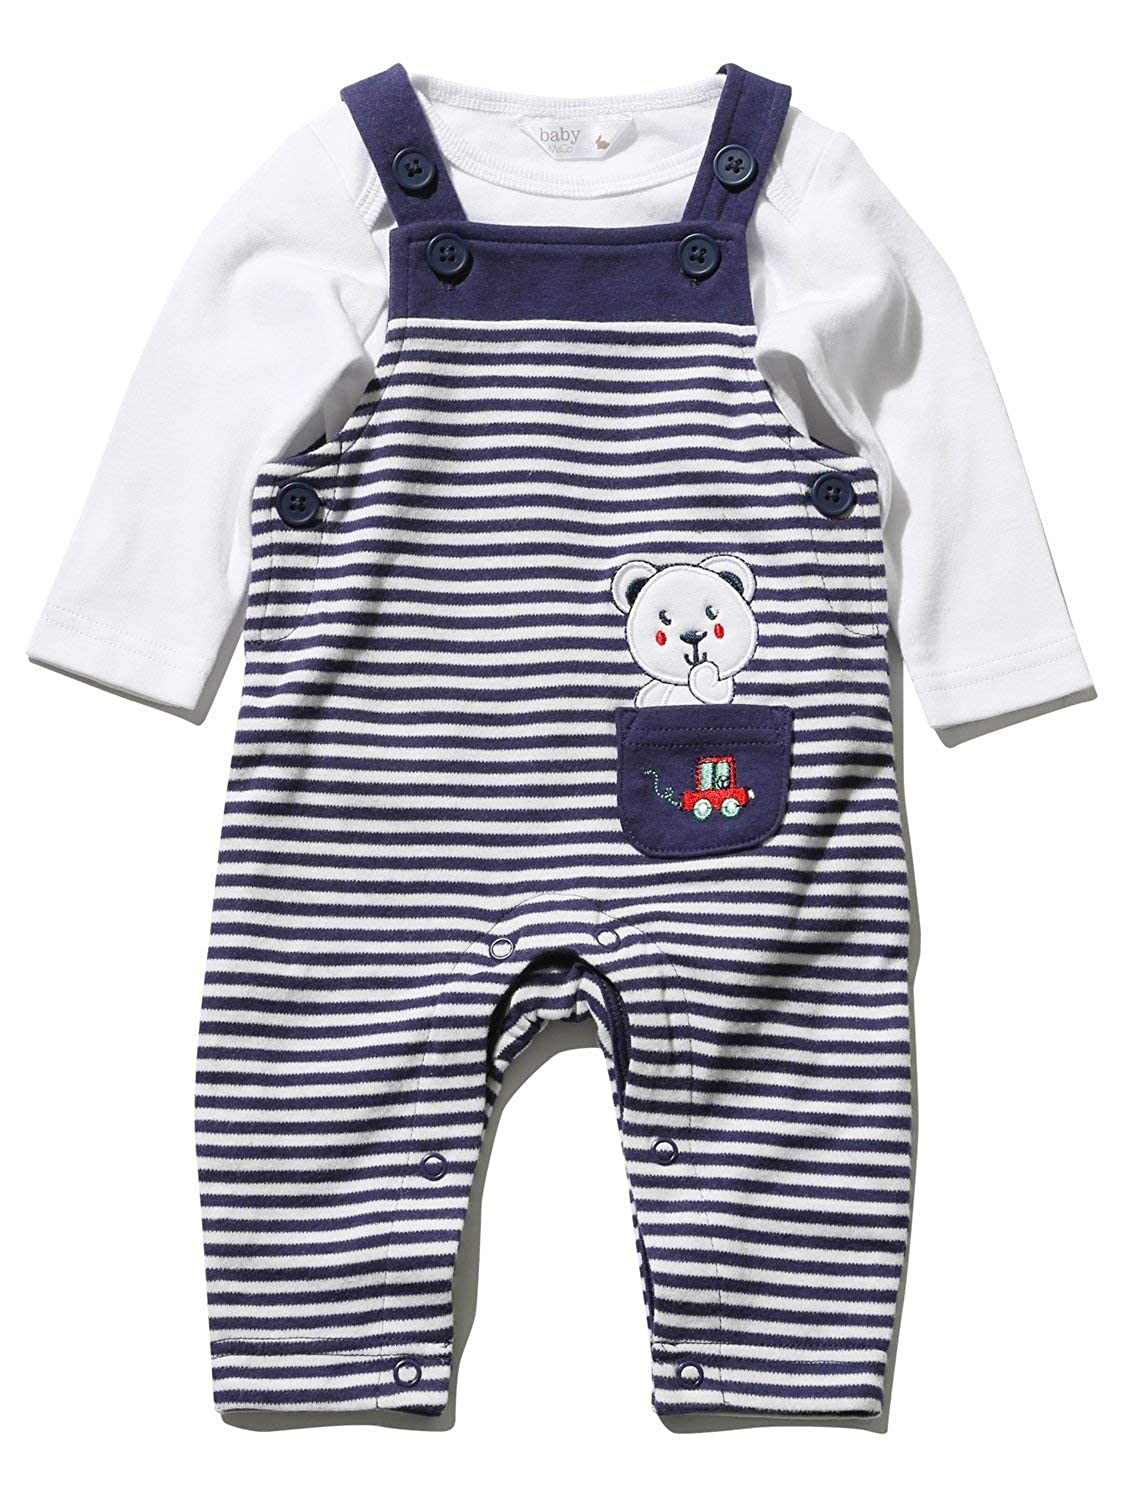 M&Co Newborn Boy Navy White Stripe Bear Applique Long Sleeve Romper and Bodysuit Set